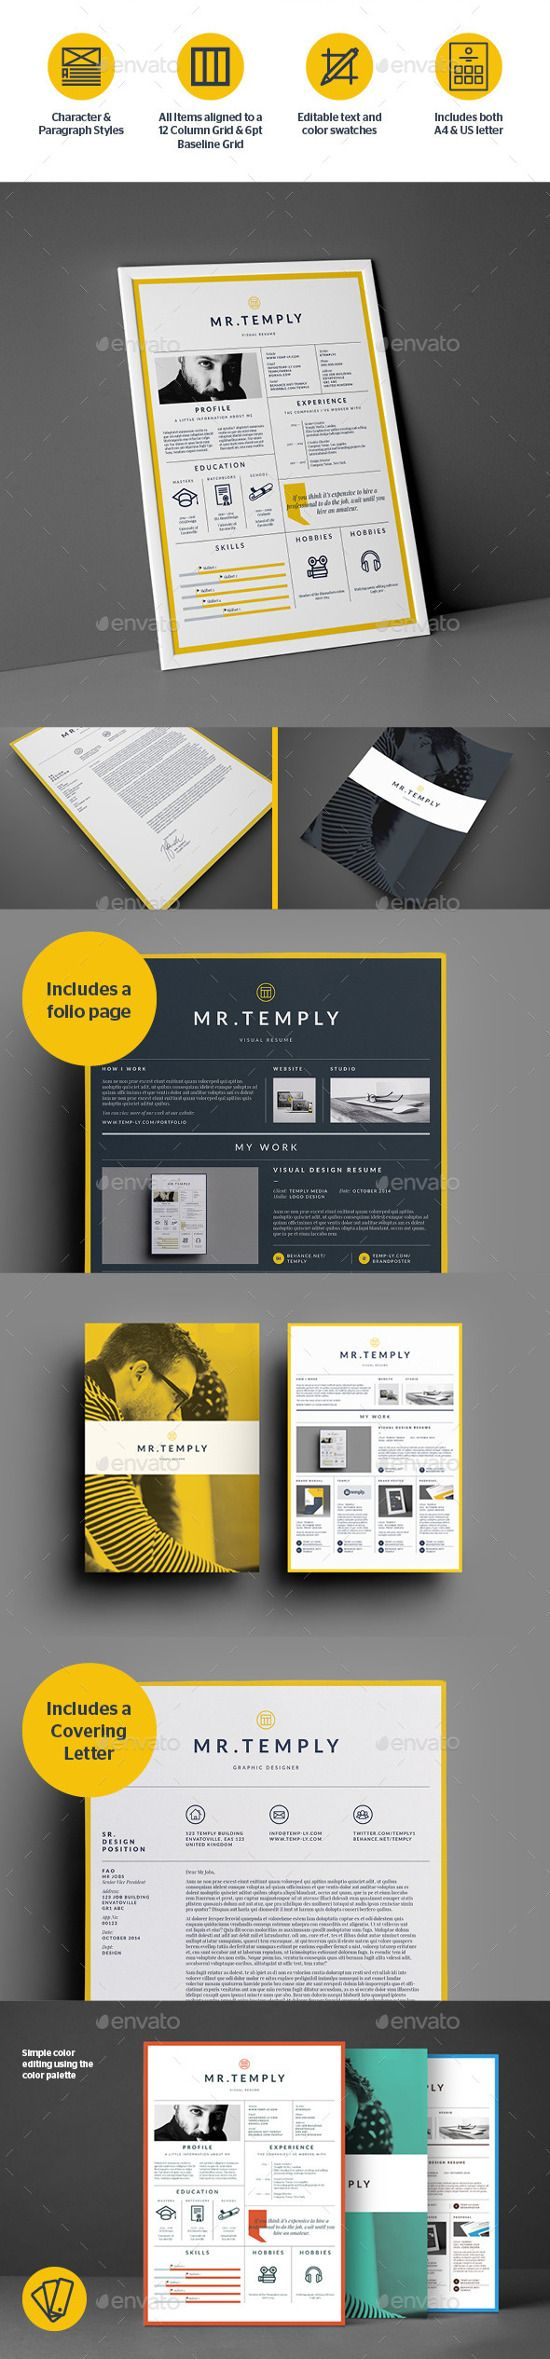 Visual Resume Templates Best Infographic Resume Templates For You  Infographic Resume